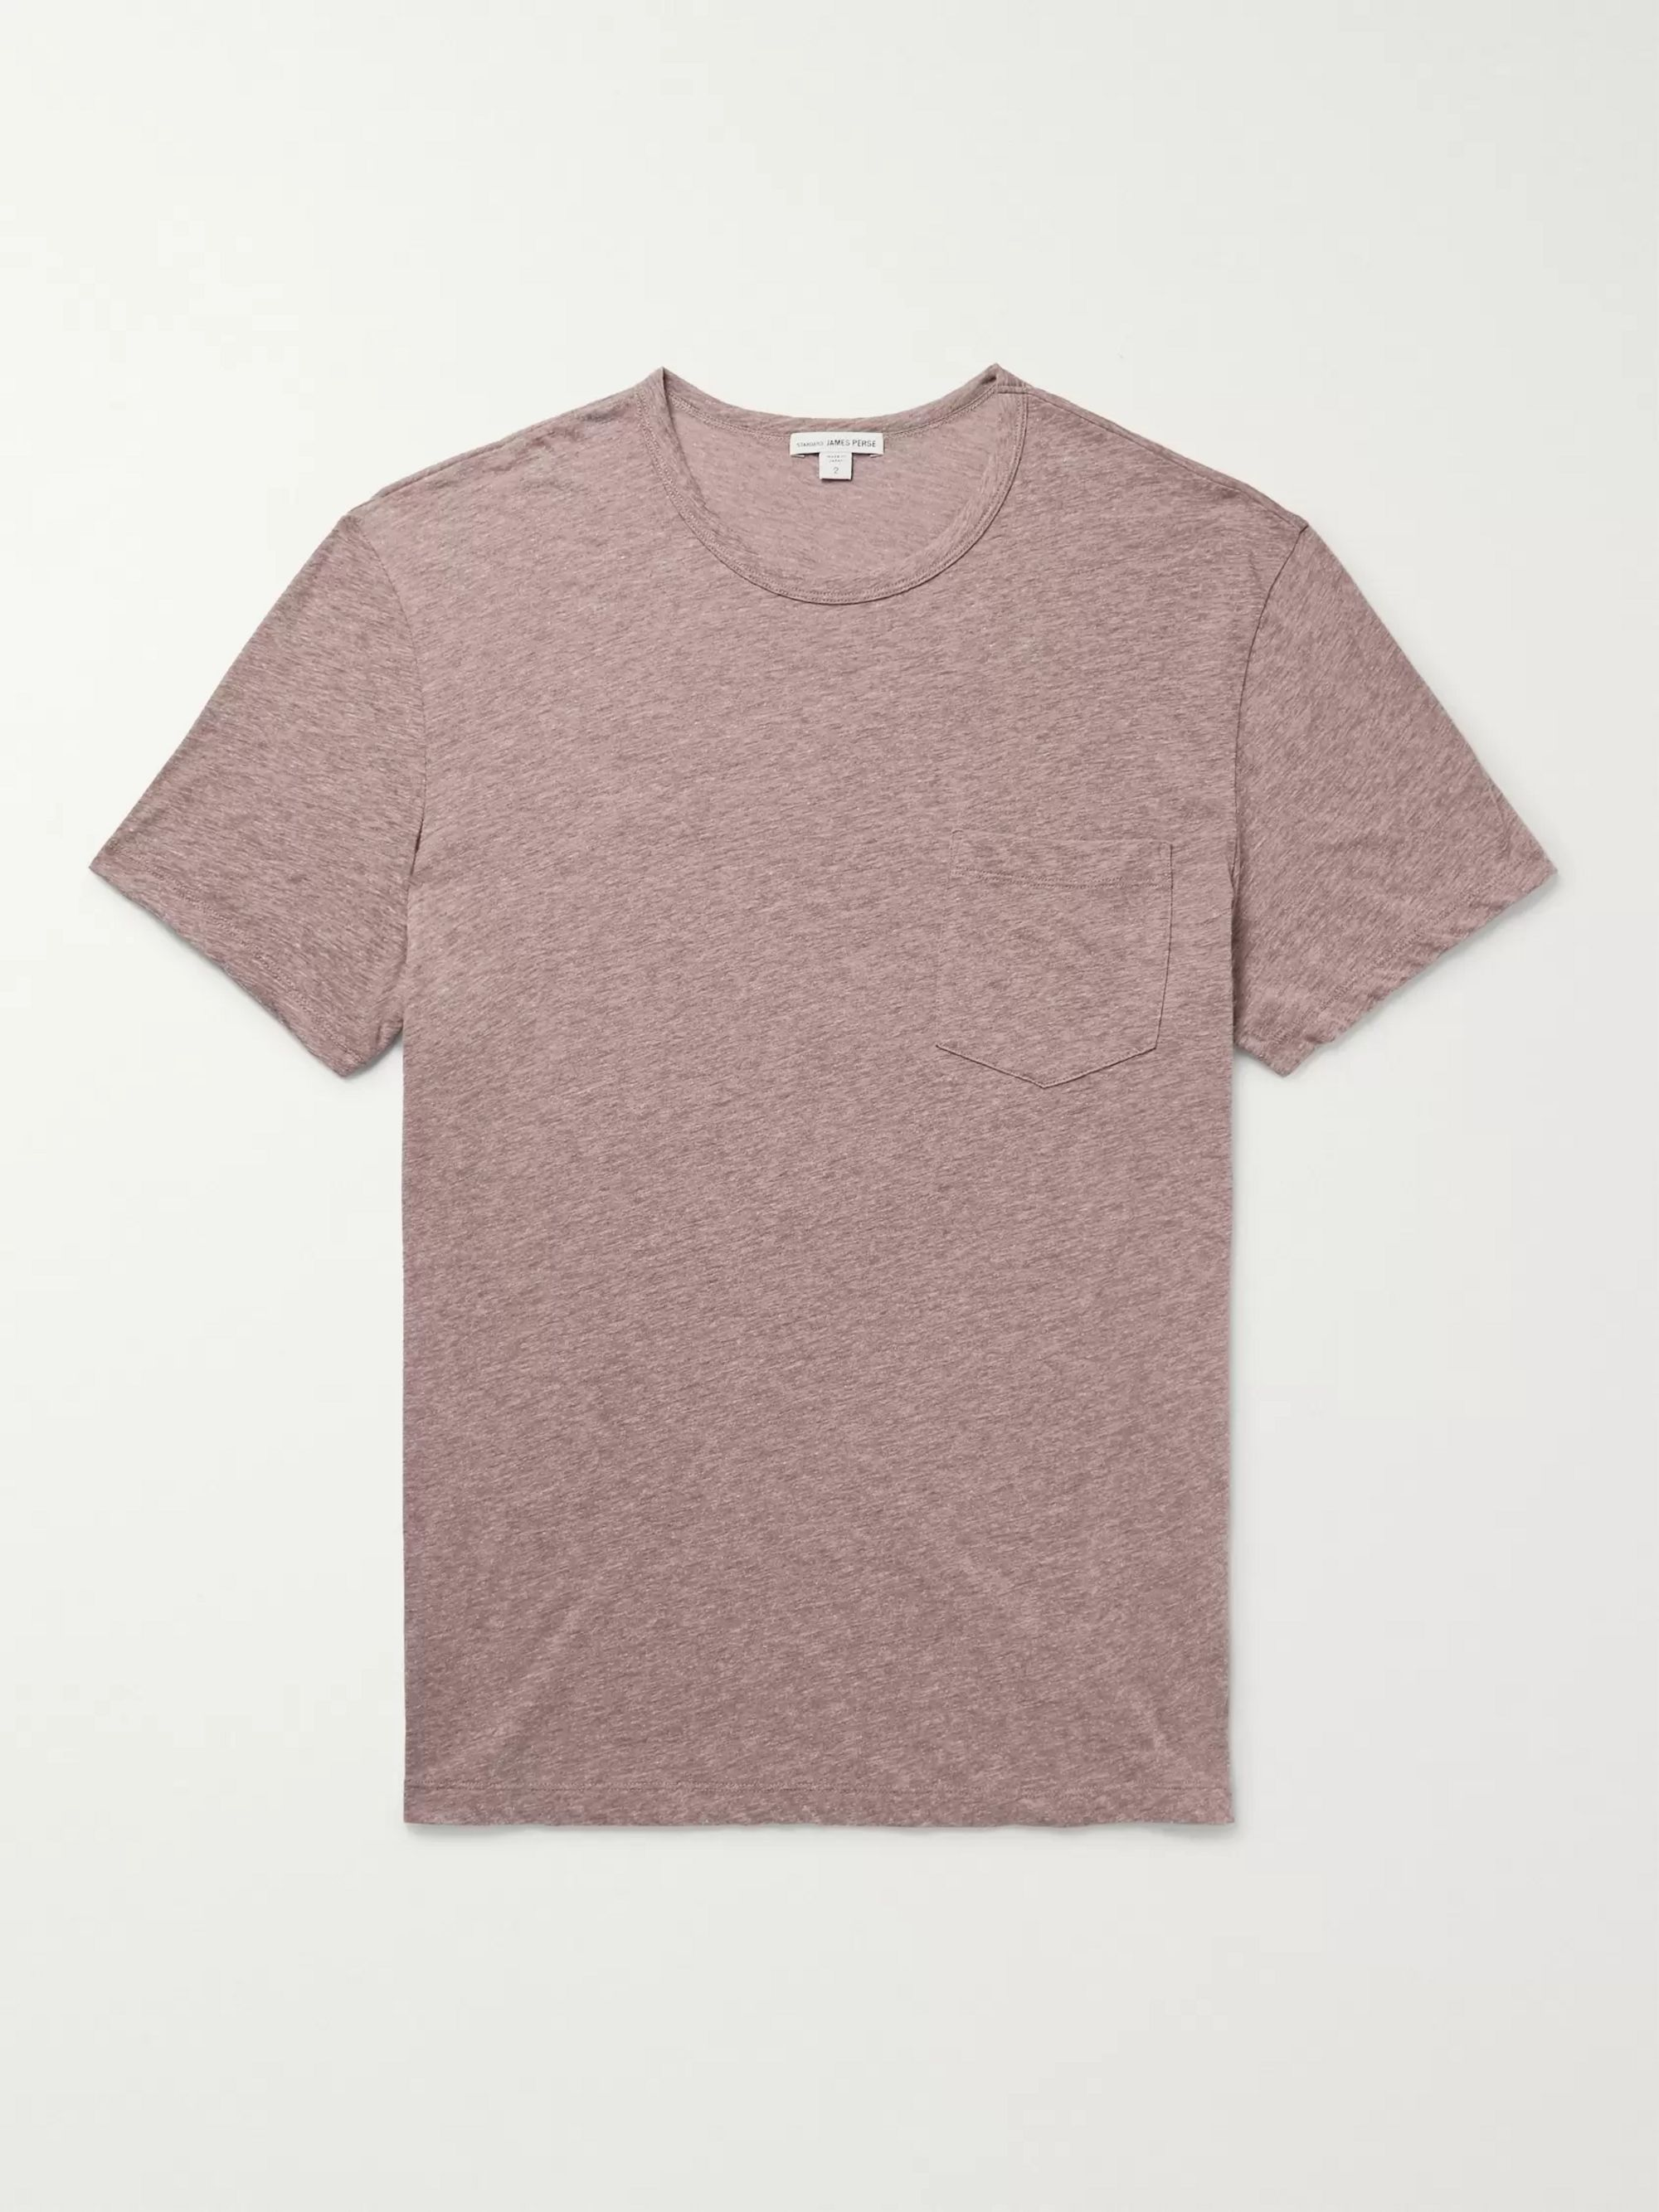 Mélange Cotton Blend Jersey T Shirt by James Perse